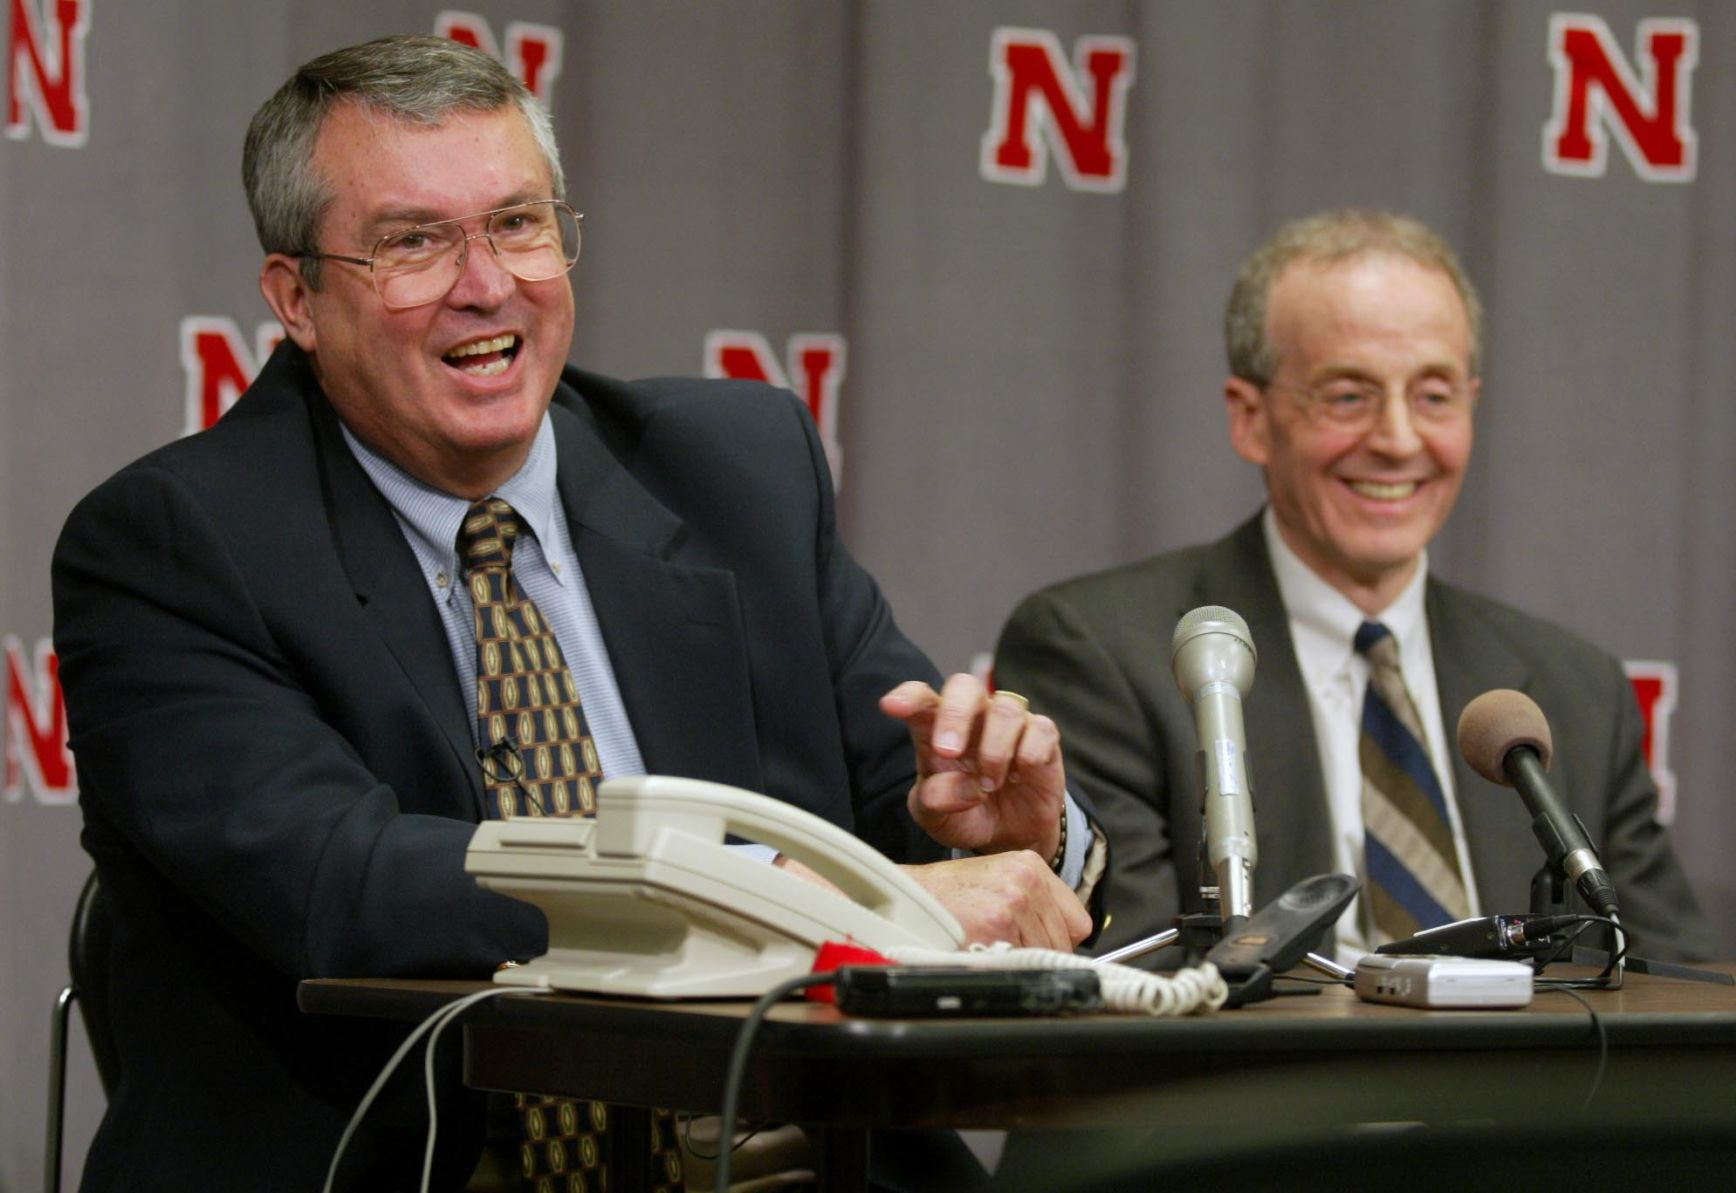 NU Regents respond to Eichorst firing